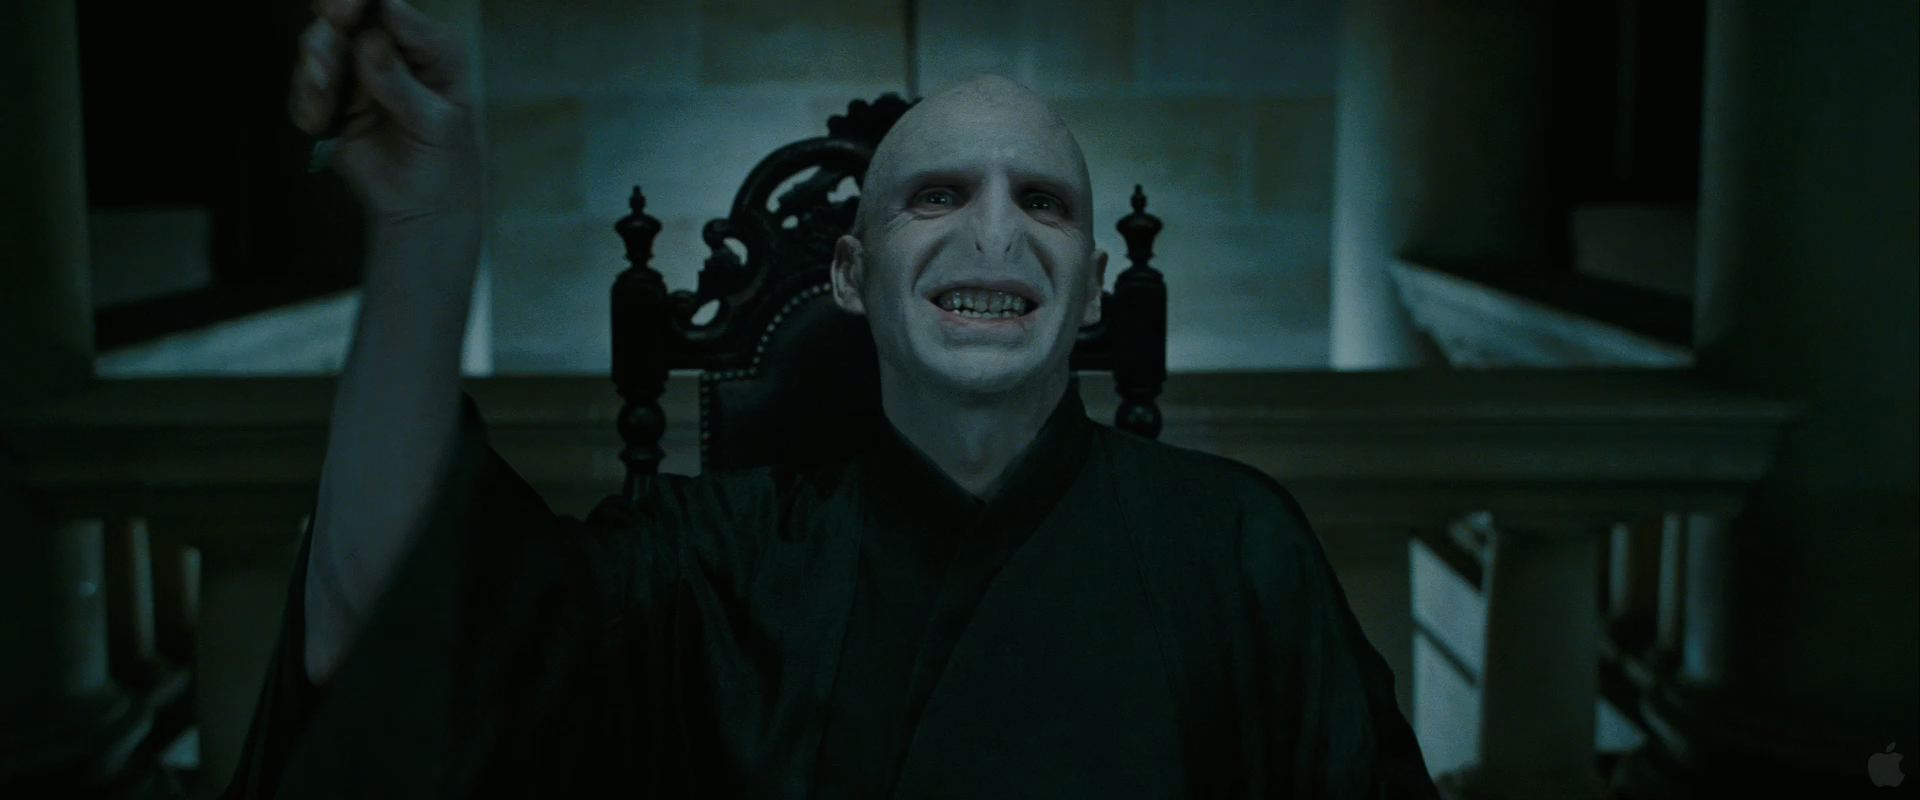 Lord Voldemort From Harry Potter And The Deathly Hallows Desktop